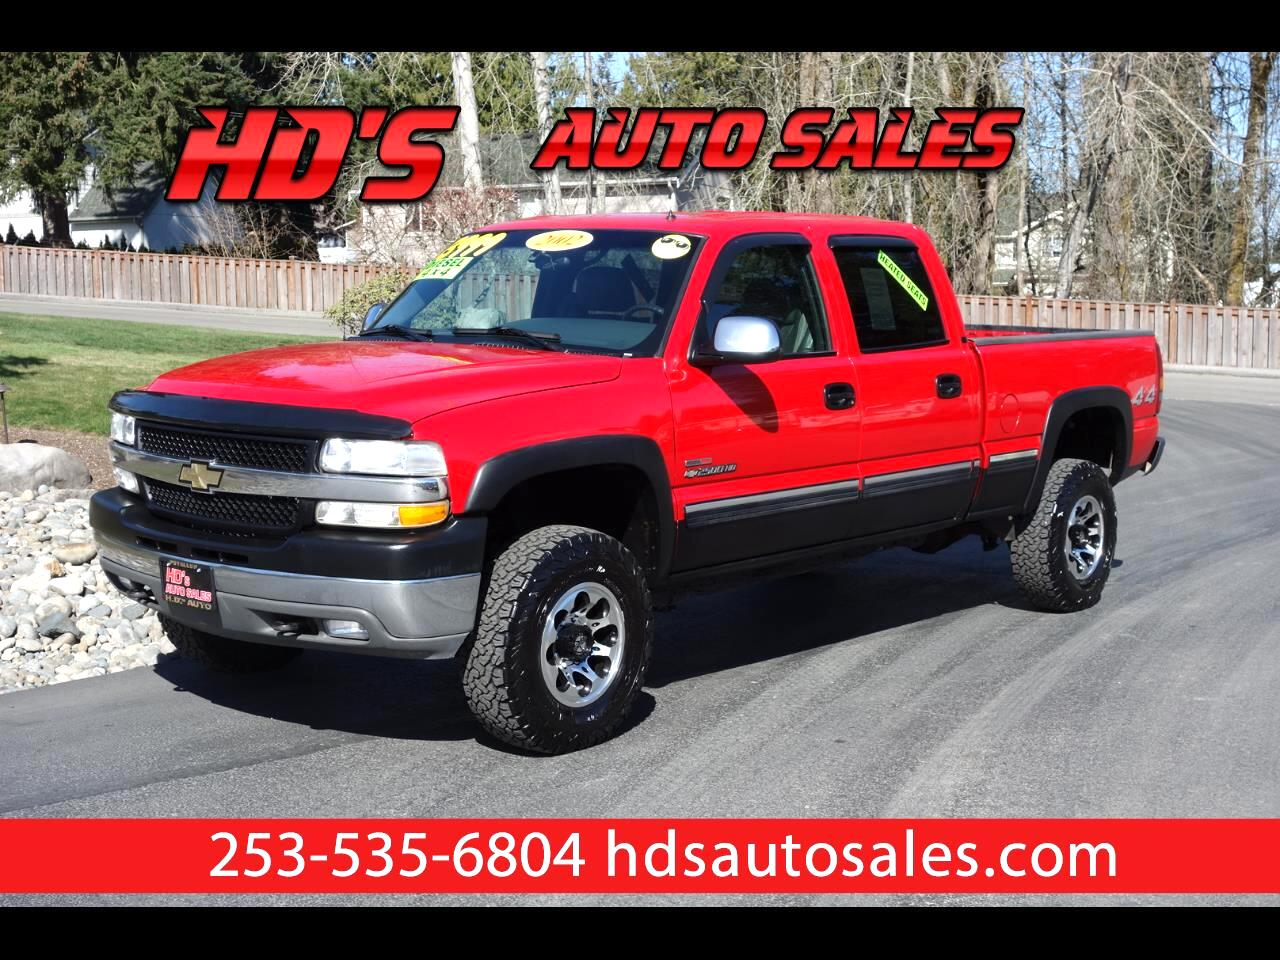 2002 Chevrolet Silverado 2500HD LT Crew Cab Short Bed 4WD